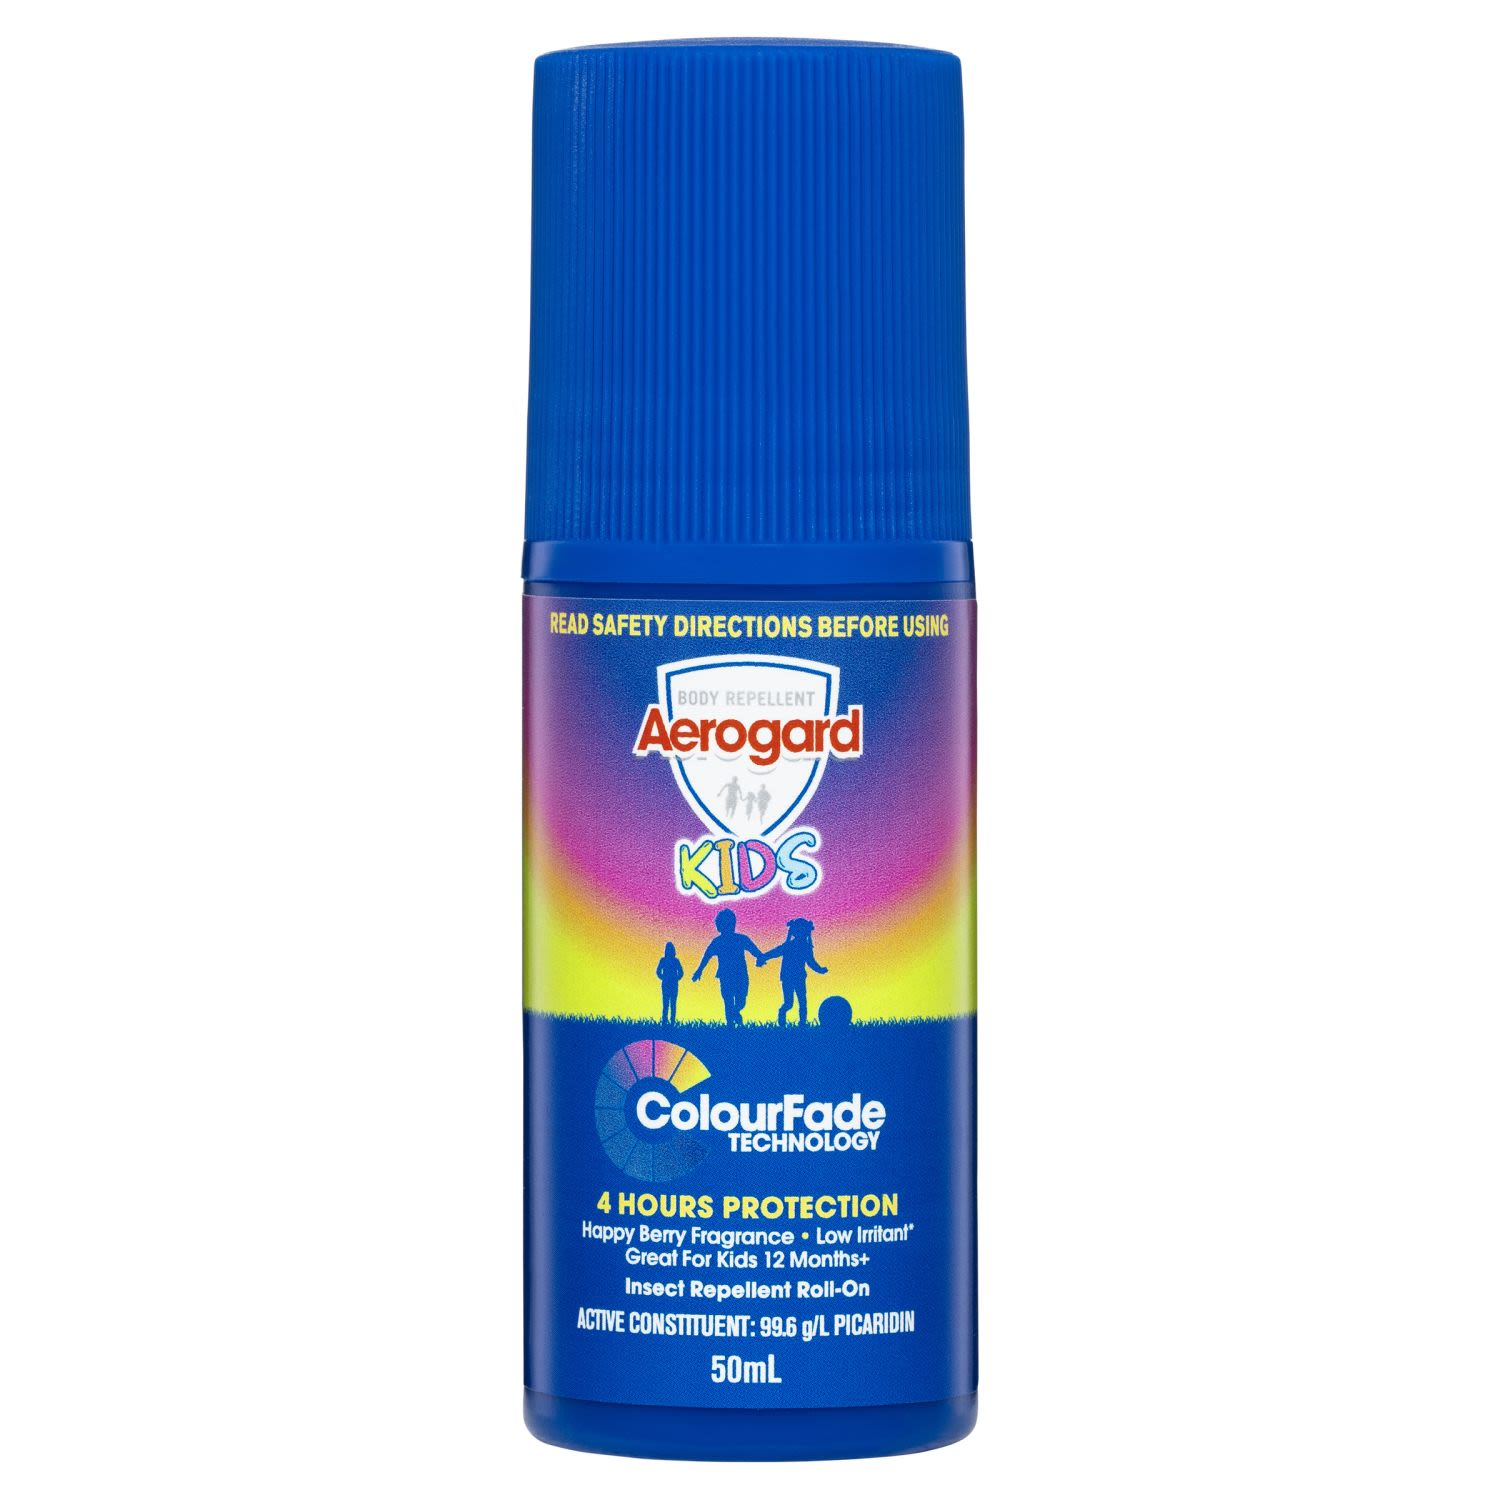 Aerogard Kids Insect Repellent Roll-On, 50 Millilitre